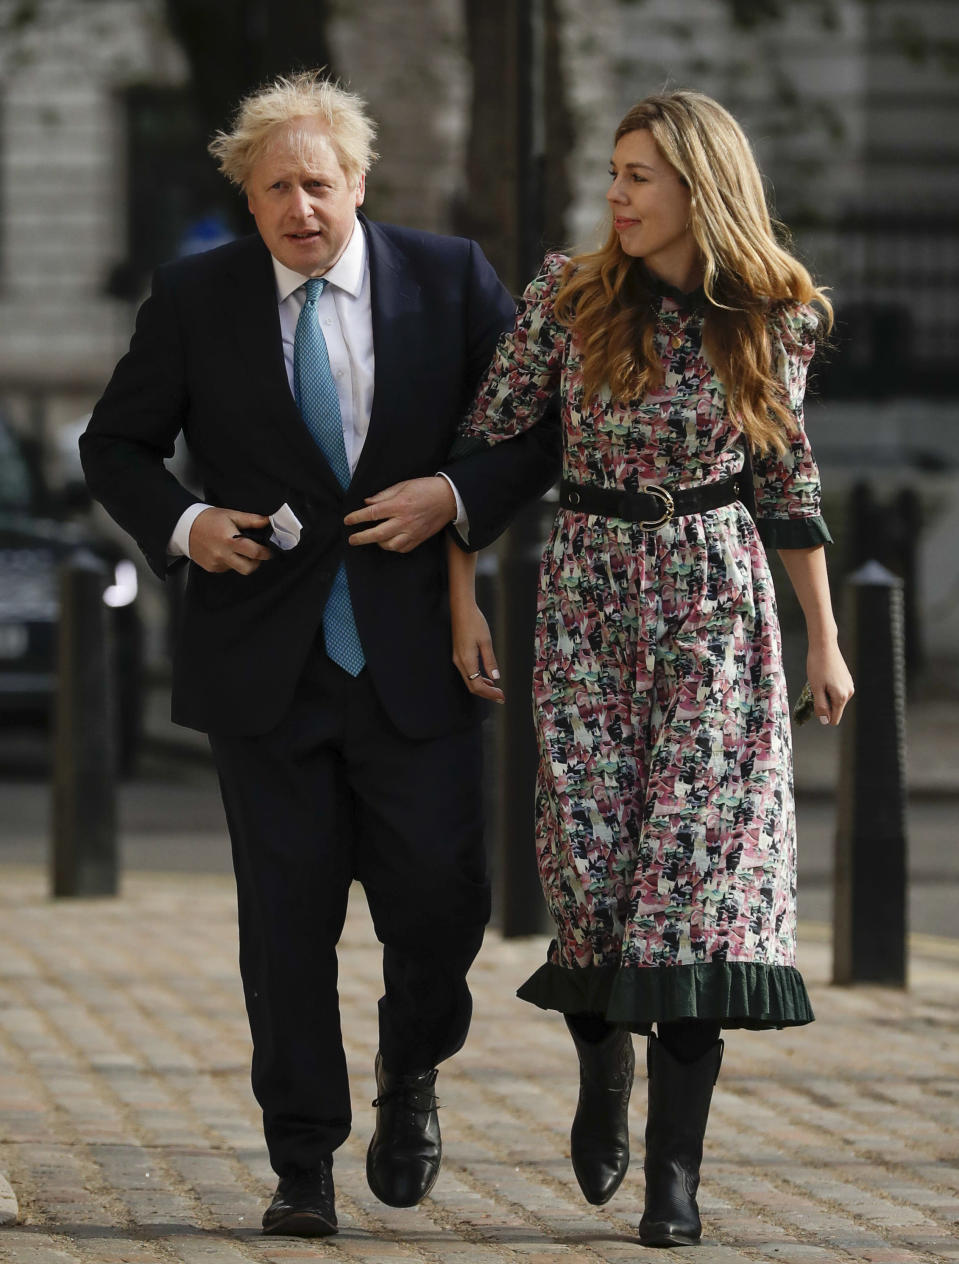 FILE - In this Thursday May 6, 2021, file photo, British Prime Minister Boris Johnson arrives at a polling station with his partner Carrie Symonds to cast his vote in local council elections in London. U.K. newspapers are reporting that Prime Minister Johnson and his fiancée Symonds married Saturday, May 29, 2021, in a small private ceremony in London. The Mail on Sunday and the Sun said the couple wed at the Roman Catholic Westminster Cathedral in front of a small group of friends and family. (AP Photo/Matt Dunham, File)